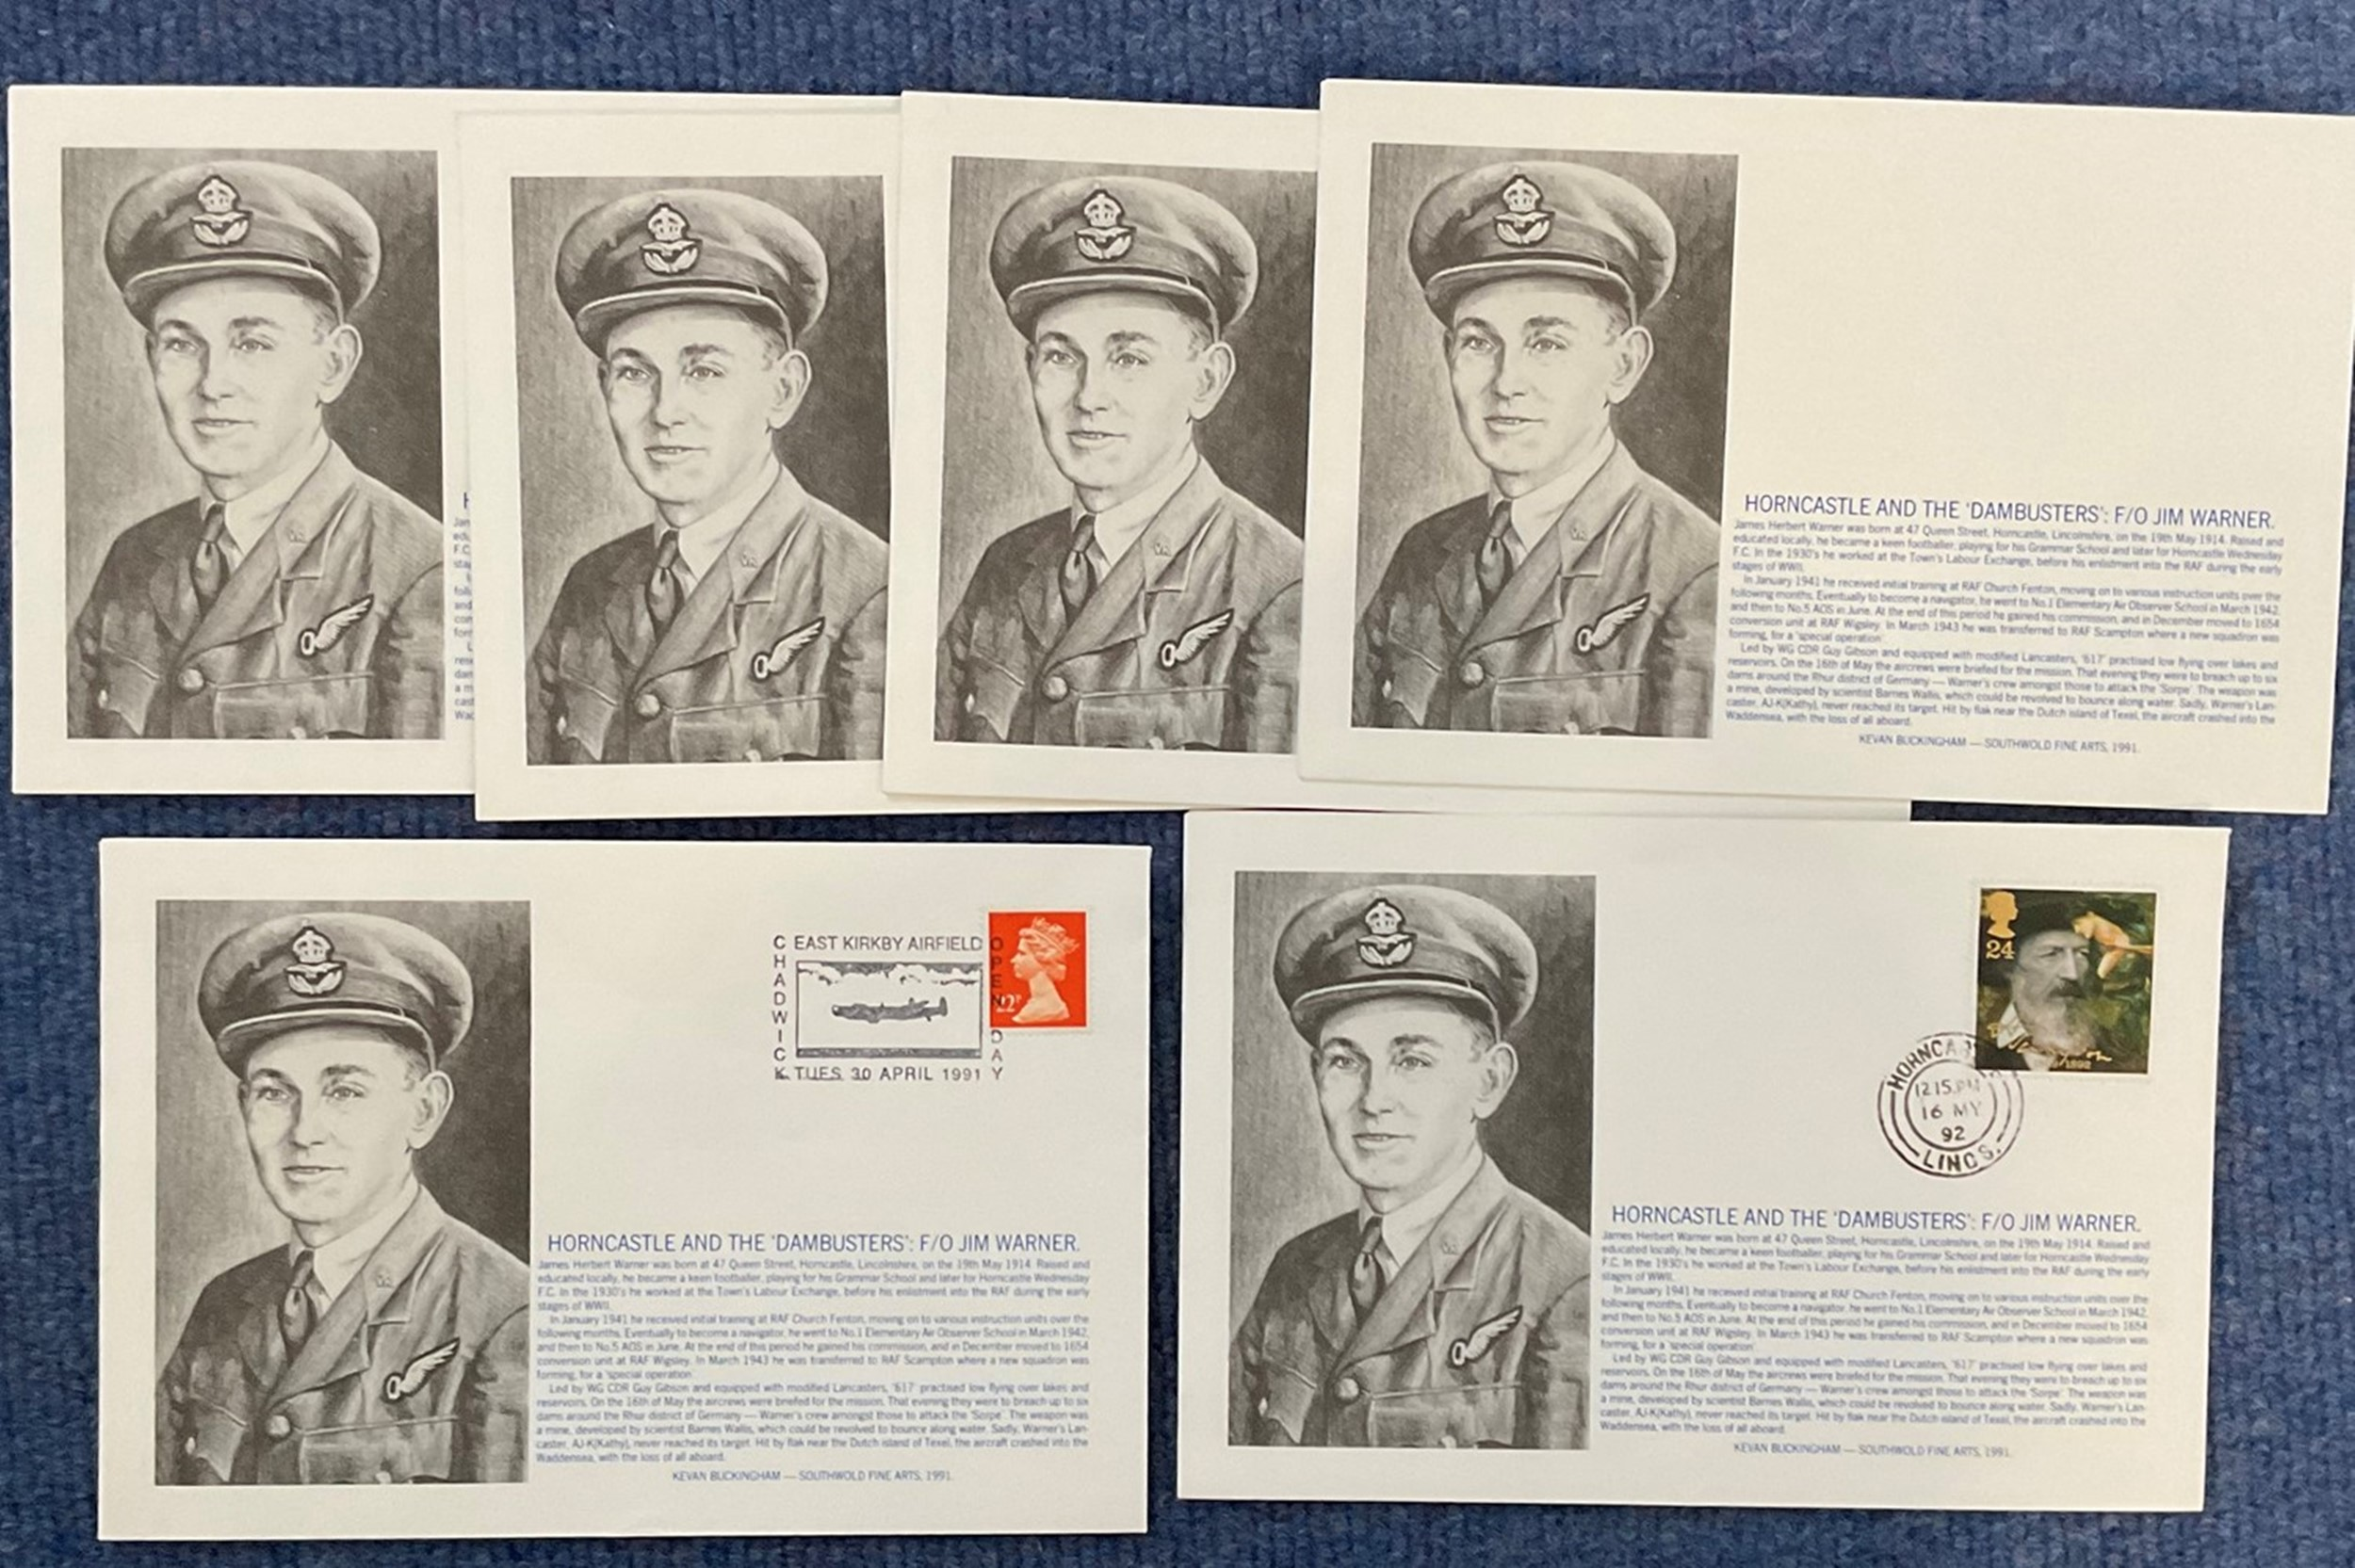 6 Limited Edition Signed Covers Horncastle and the Dambusters F/O Jim Warner, All are Signed on